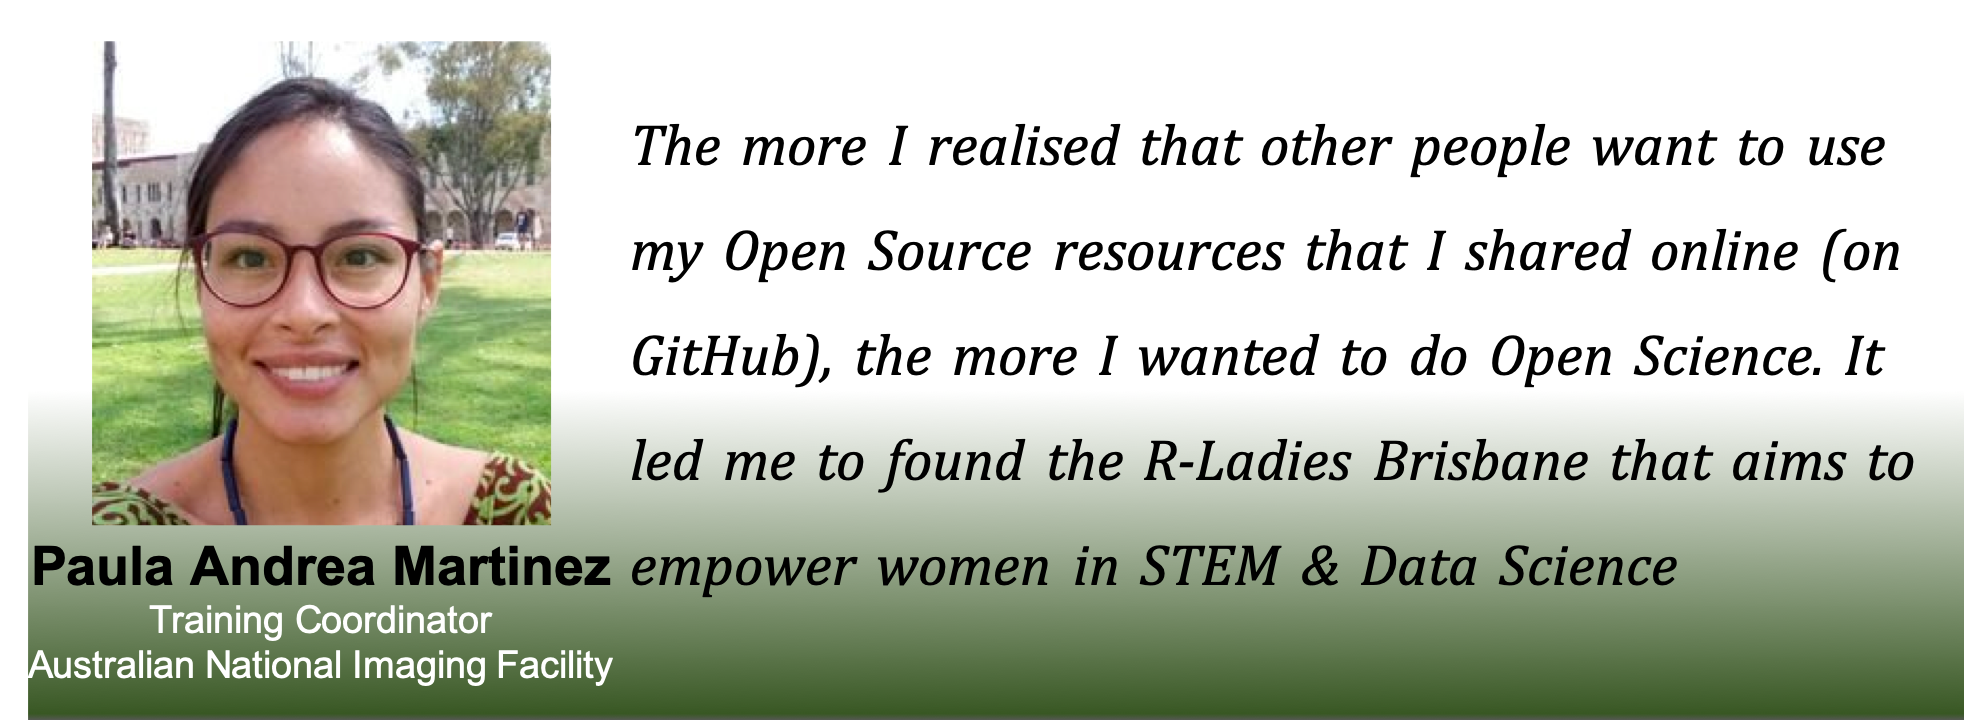 Picture of Paula with the caption: The more I realised that other people wanted to use me Open Source resources online (on GitHub), the more i wanted to do open science. IT led me to ofund the R-Ladies Brisbane, that aims to empower women in STEM and data science.